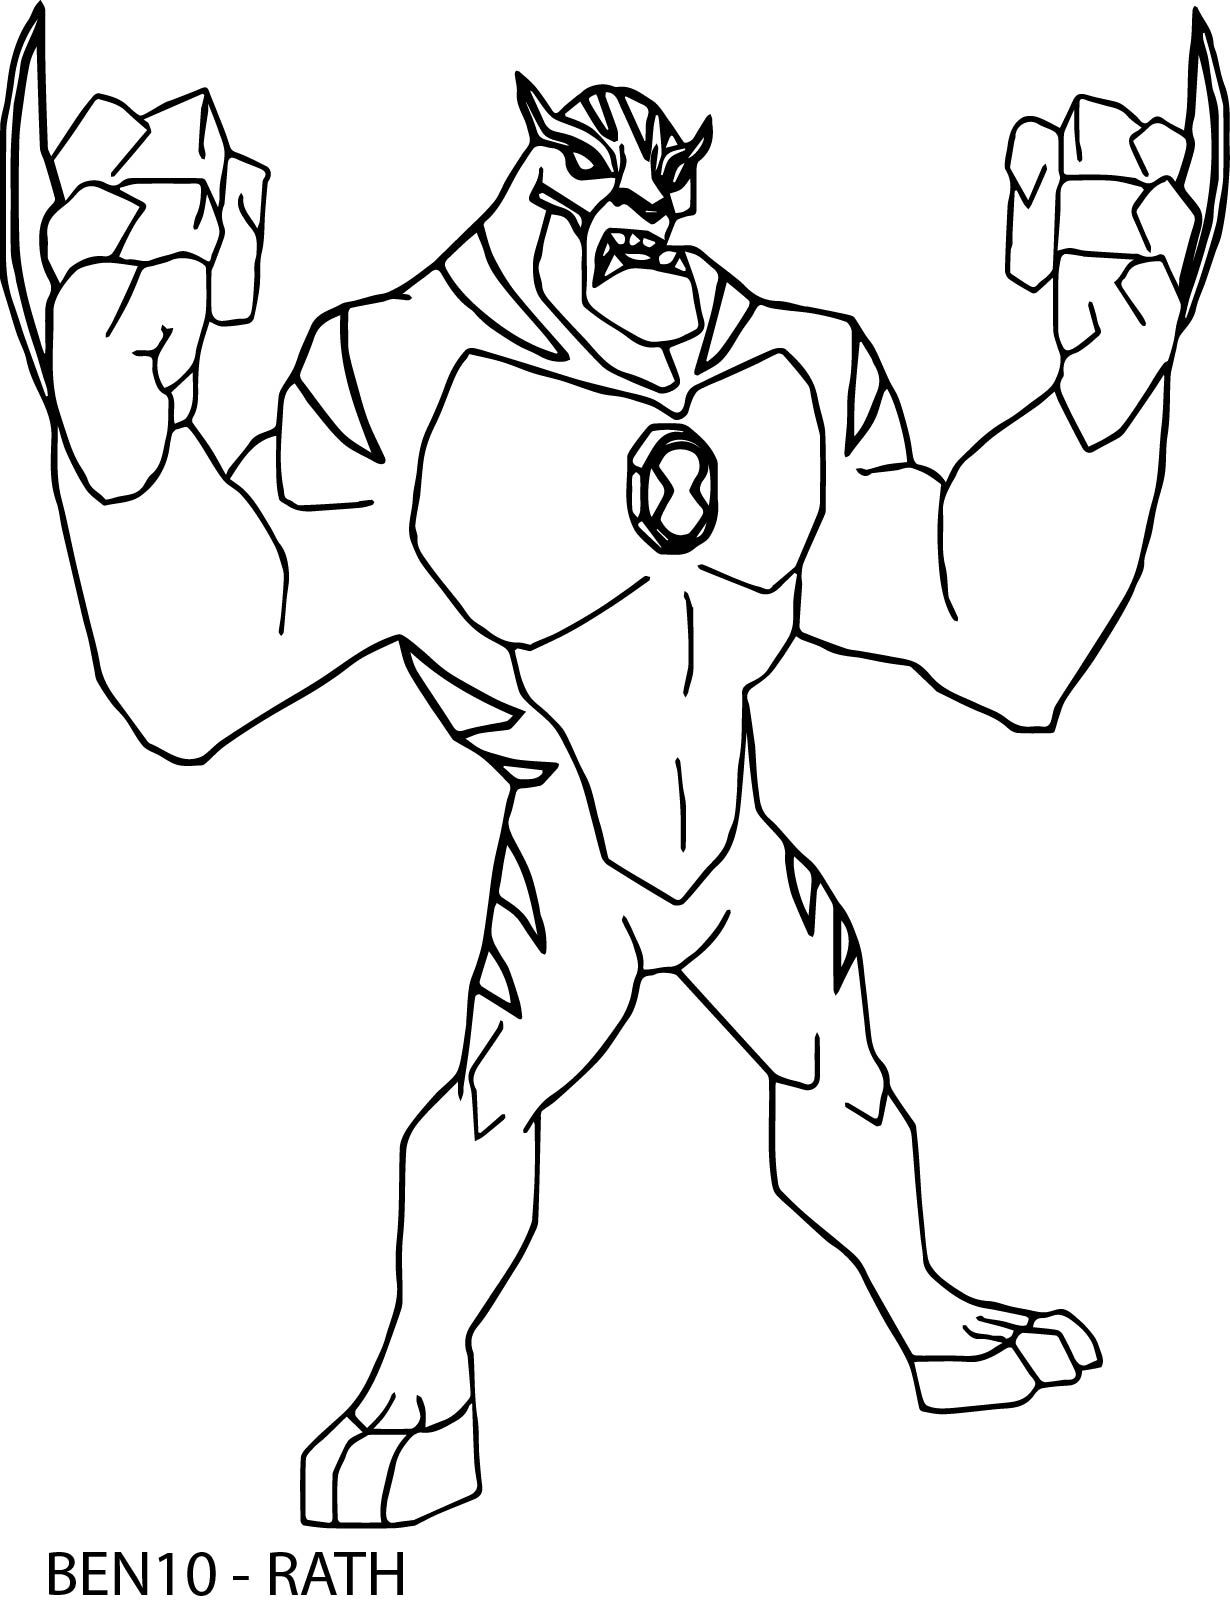 Cool Rath Ben 10 Alien Force By Bentenny 10 Coloring Page Coloring Pages Geometric Coloring Pages Planet Coloring Pages